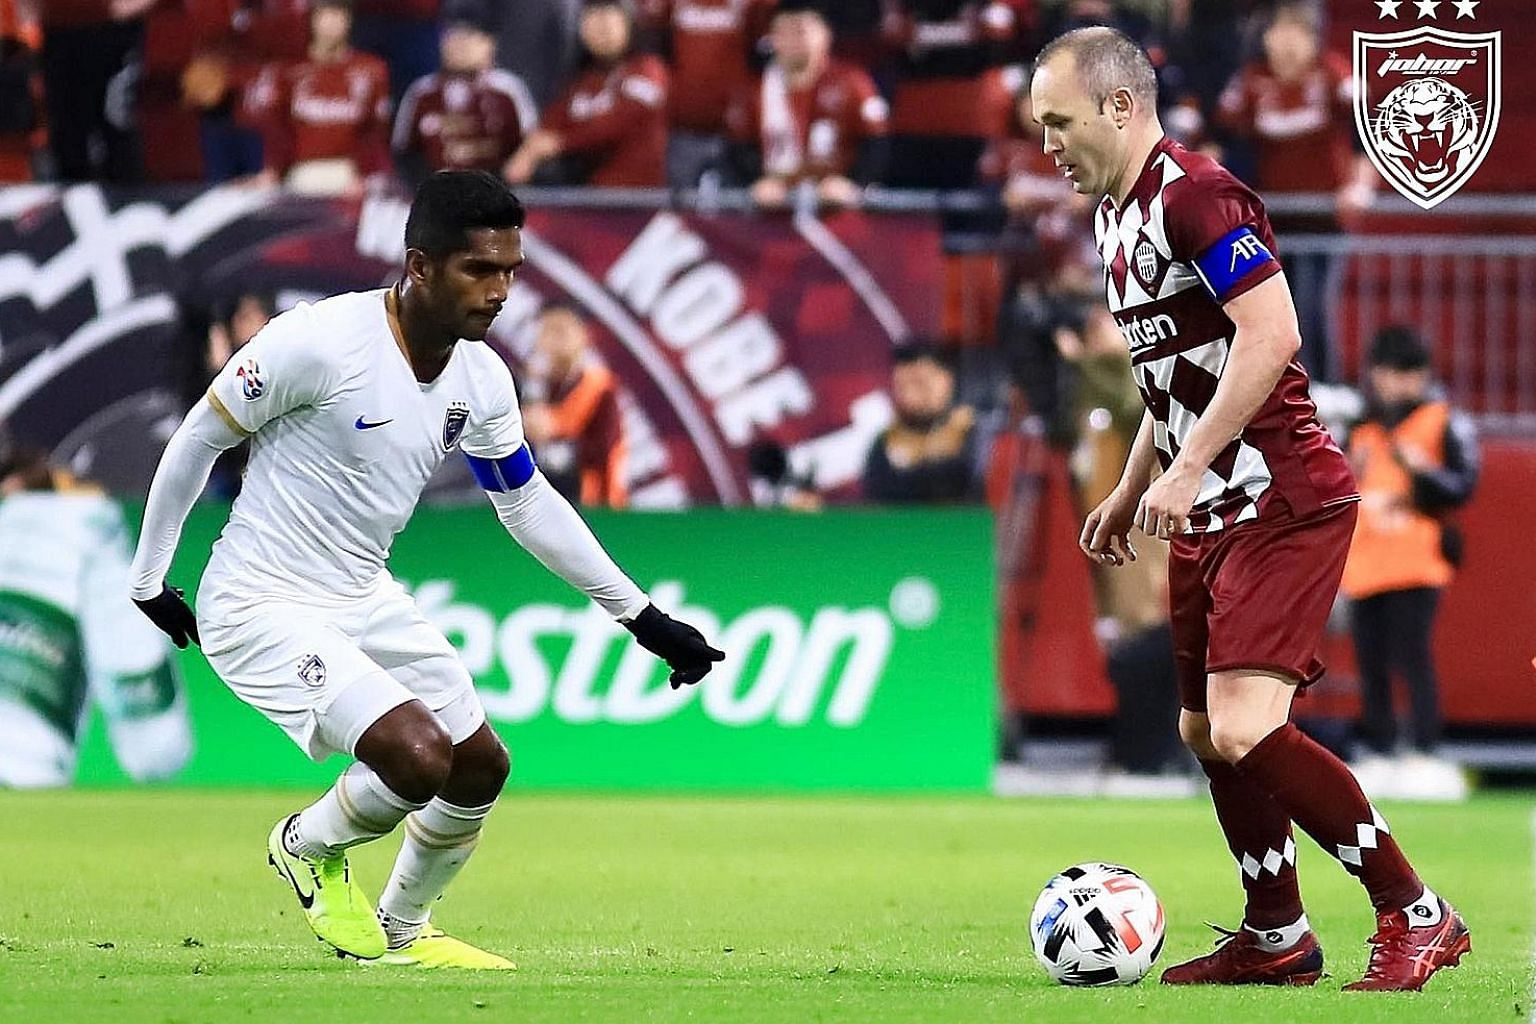 Singapore and JDT skipper Hariss Harun marking his Vissel Kobe counterpart Andres Iniesta, the former Spain and Barcelona star, in their Asian Champions League opening game in February. He knows his Malaysian side are top paymasters and hence can con